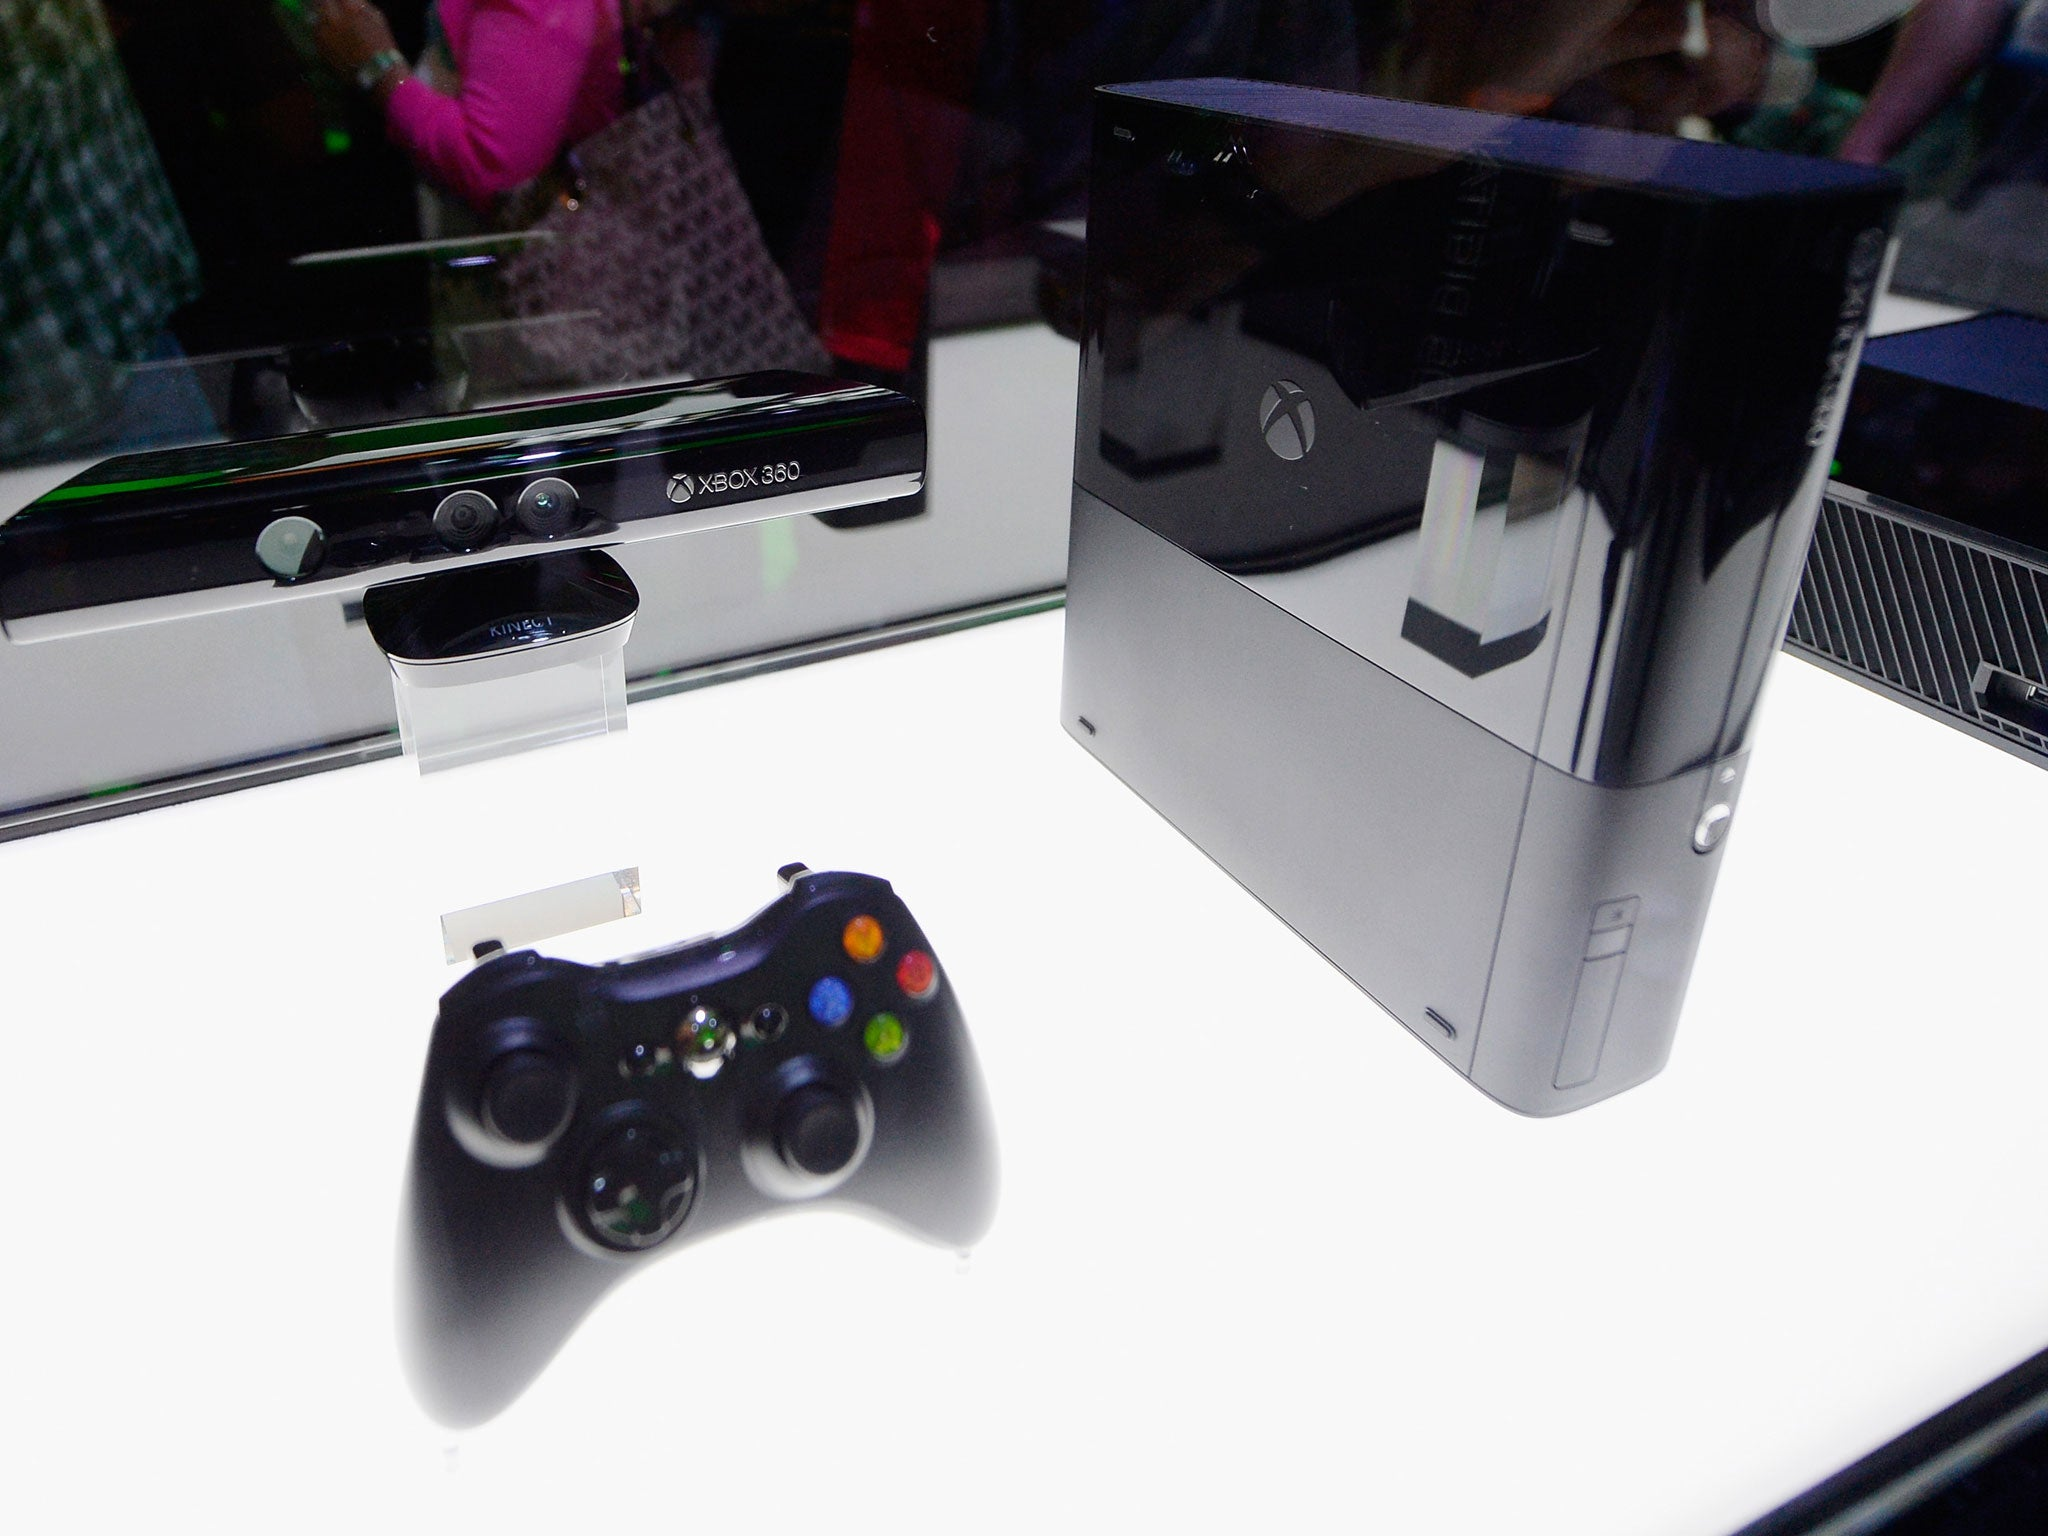 Microsoft issues warning after fake Xbox One 'hack' leaves